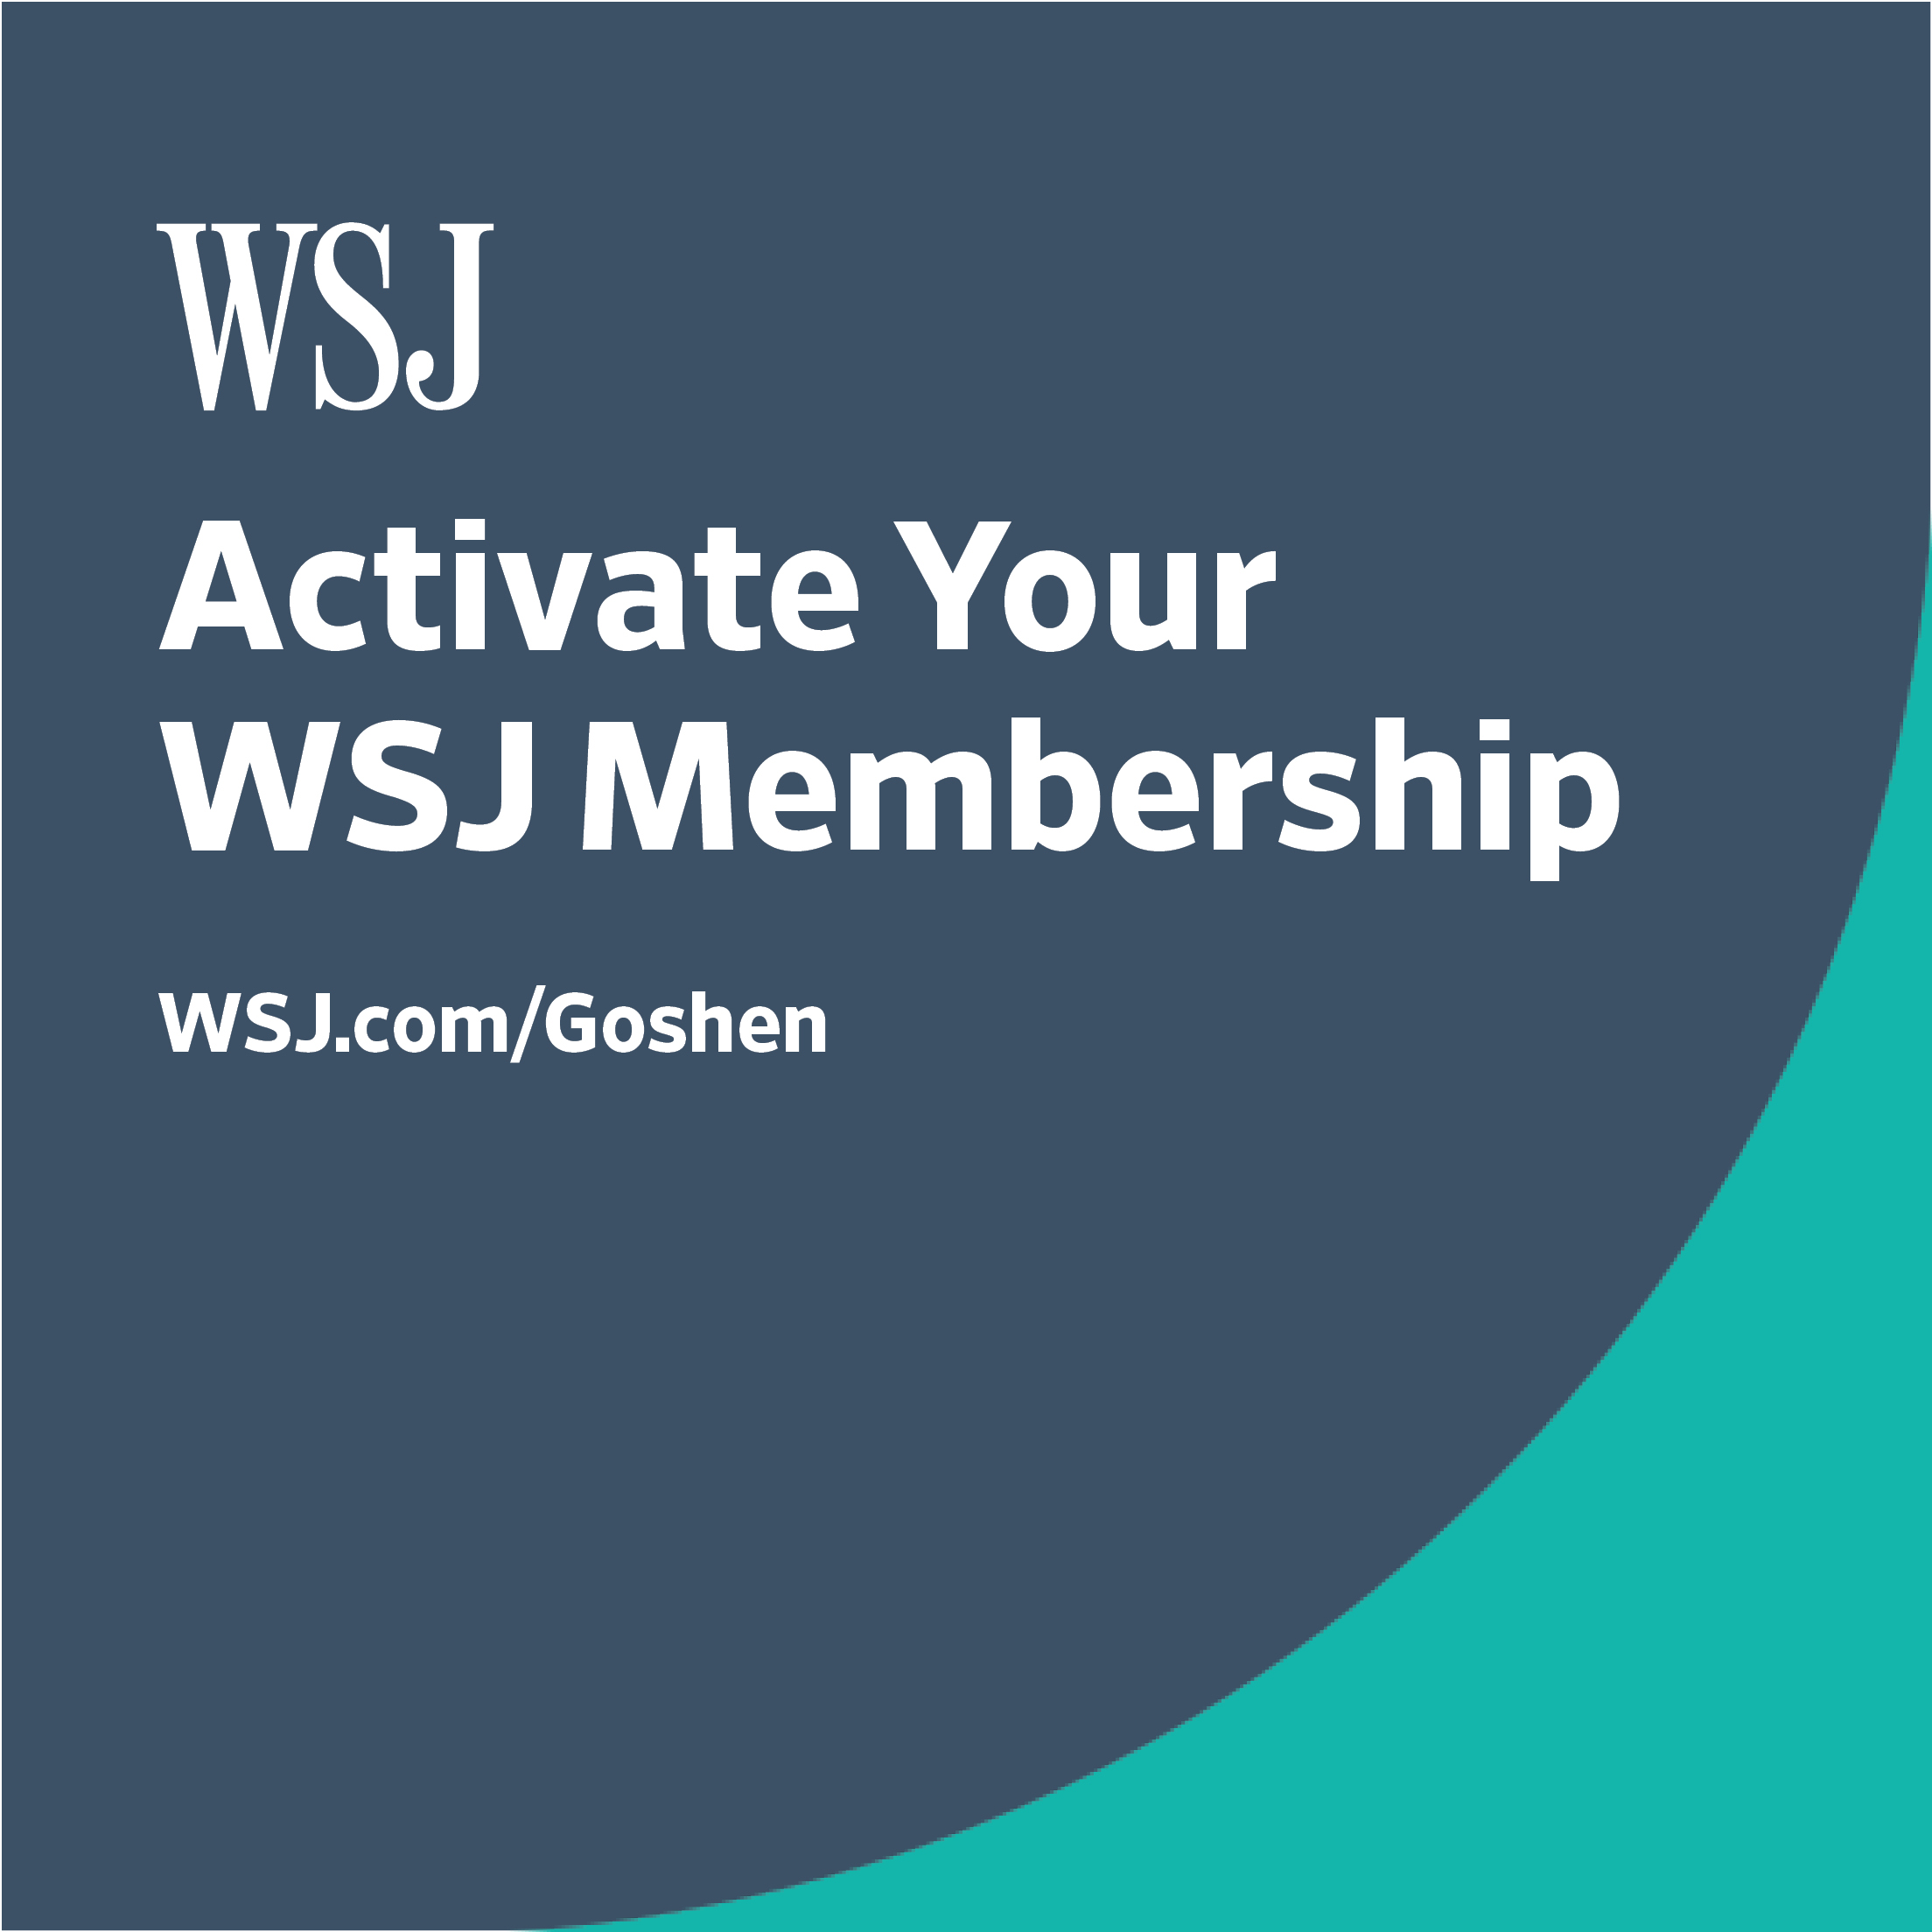 WSJ Activate Your Membership